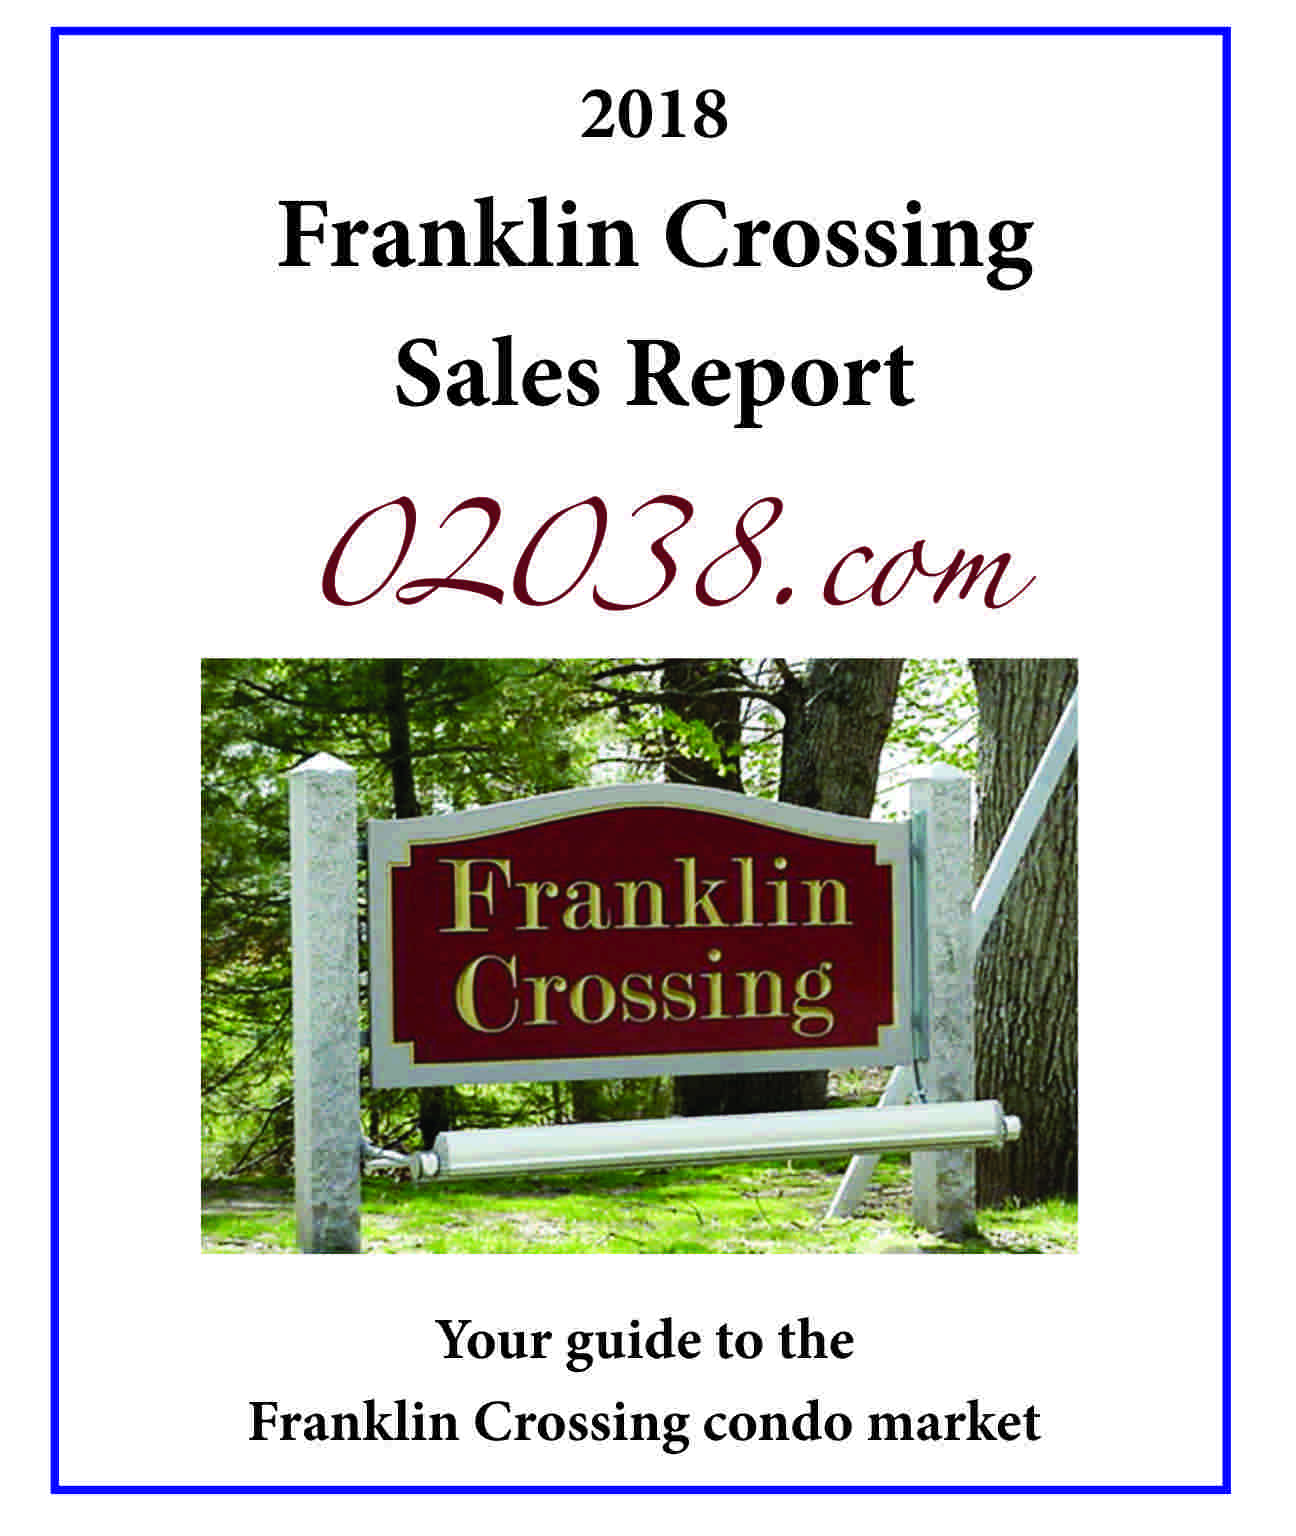 ranklin Crossing Condos Franklin MA sales report 2018